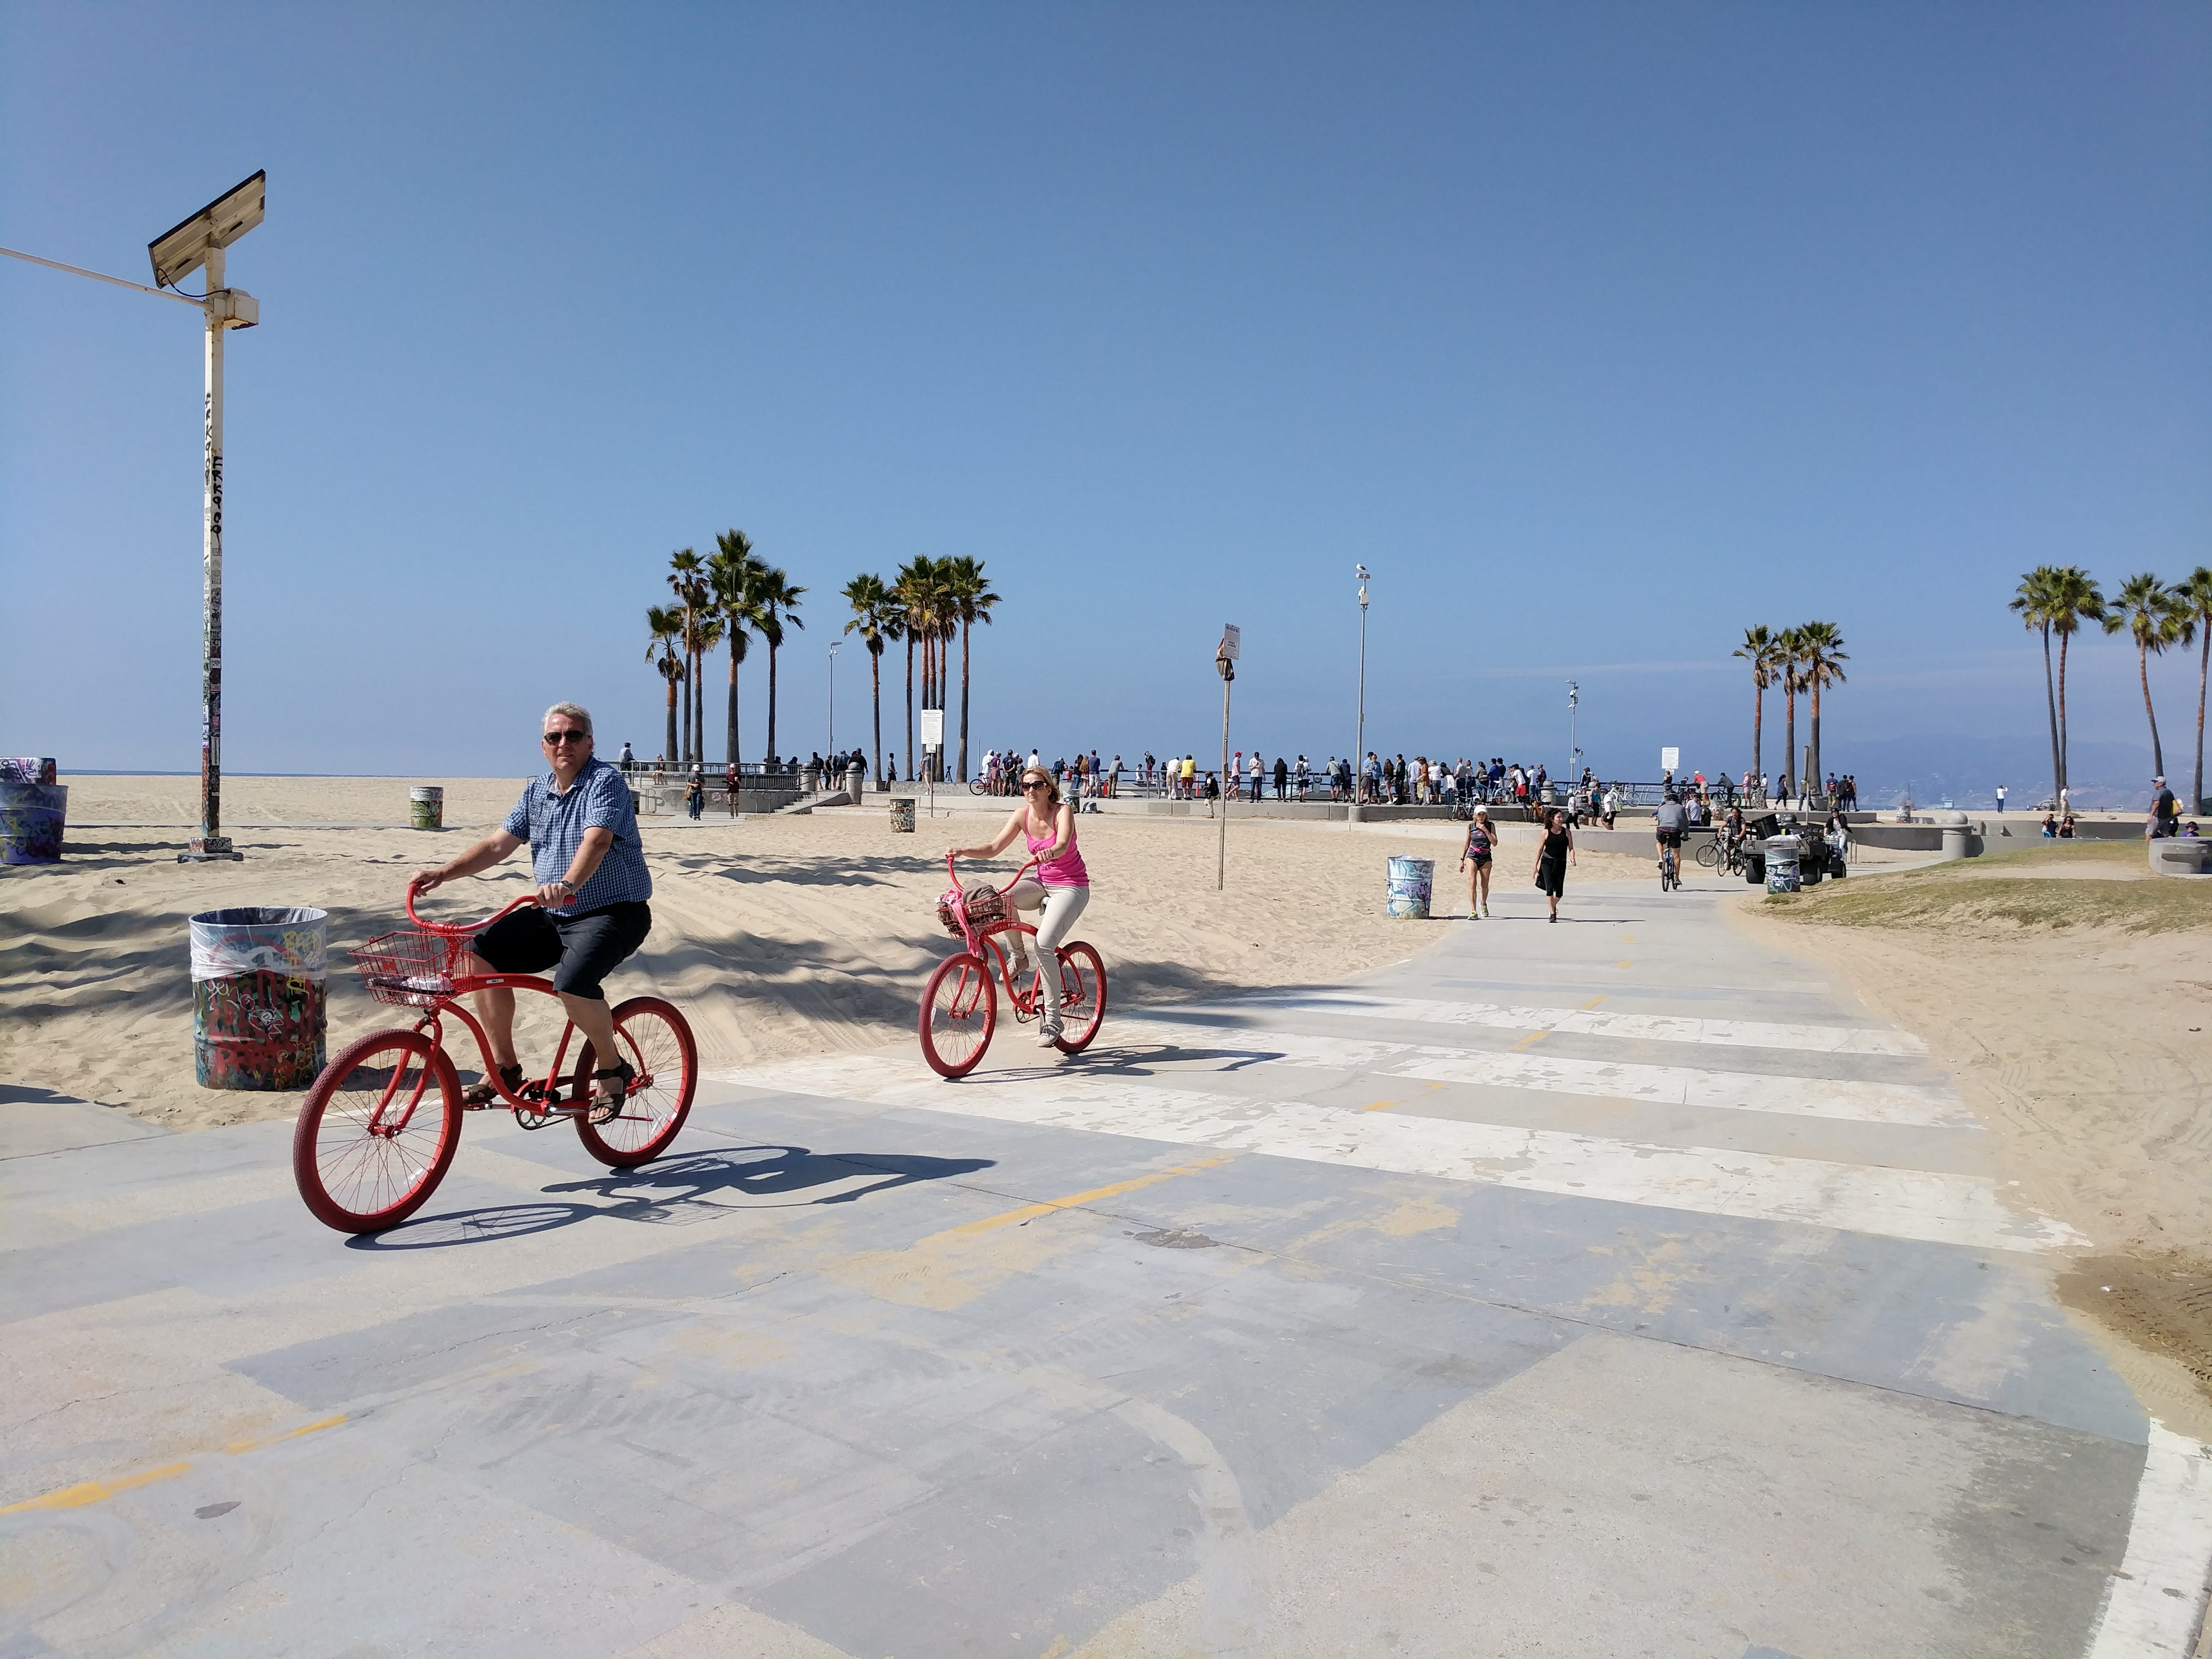 Cycling on the bikeway in Venice Beach.